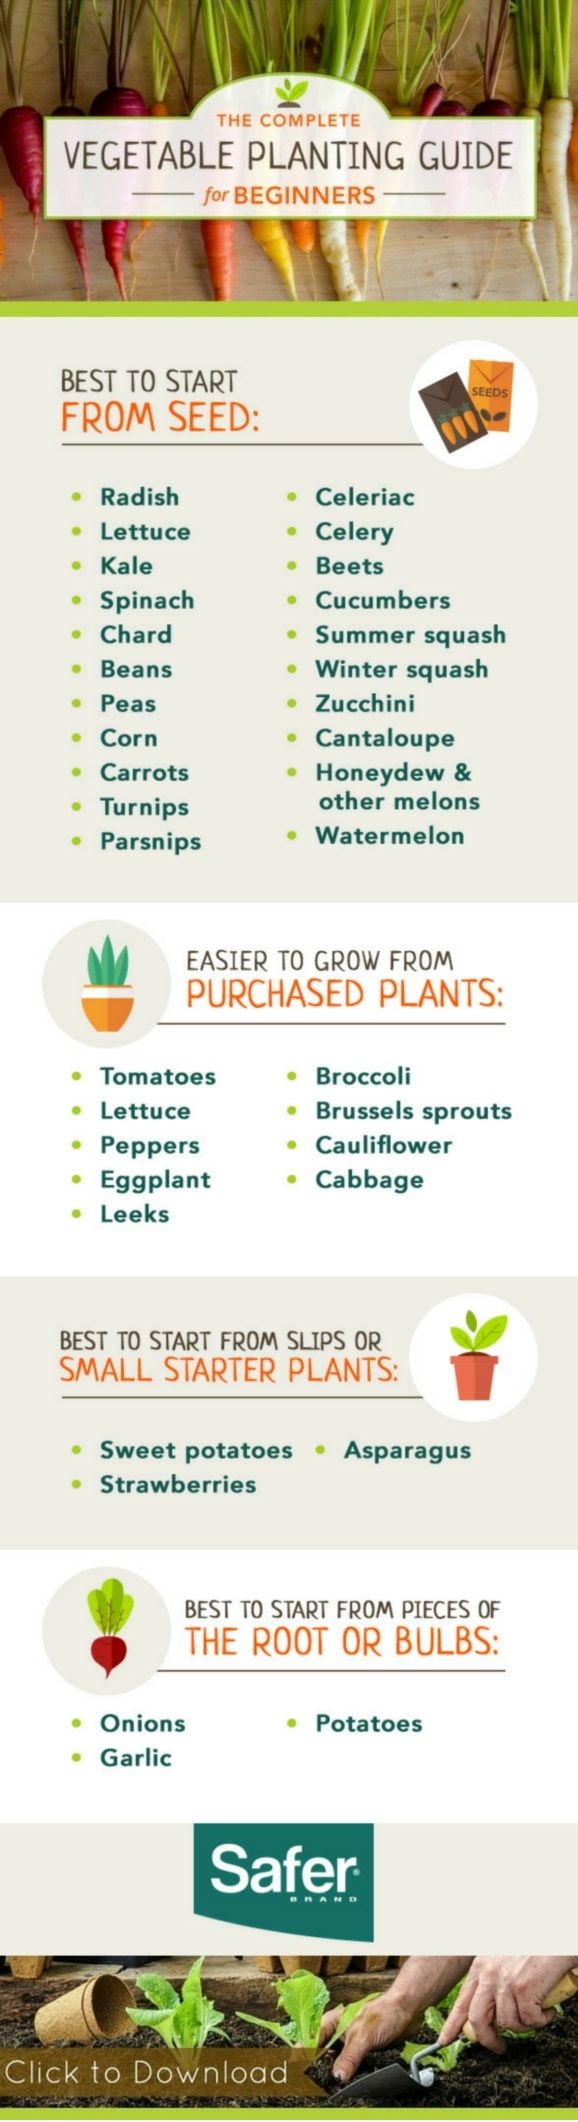 Tips - top tips on what you should use to start off growing different types of vegetables | #growyourown #vegetables #beginnersguide